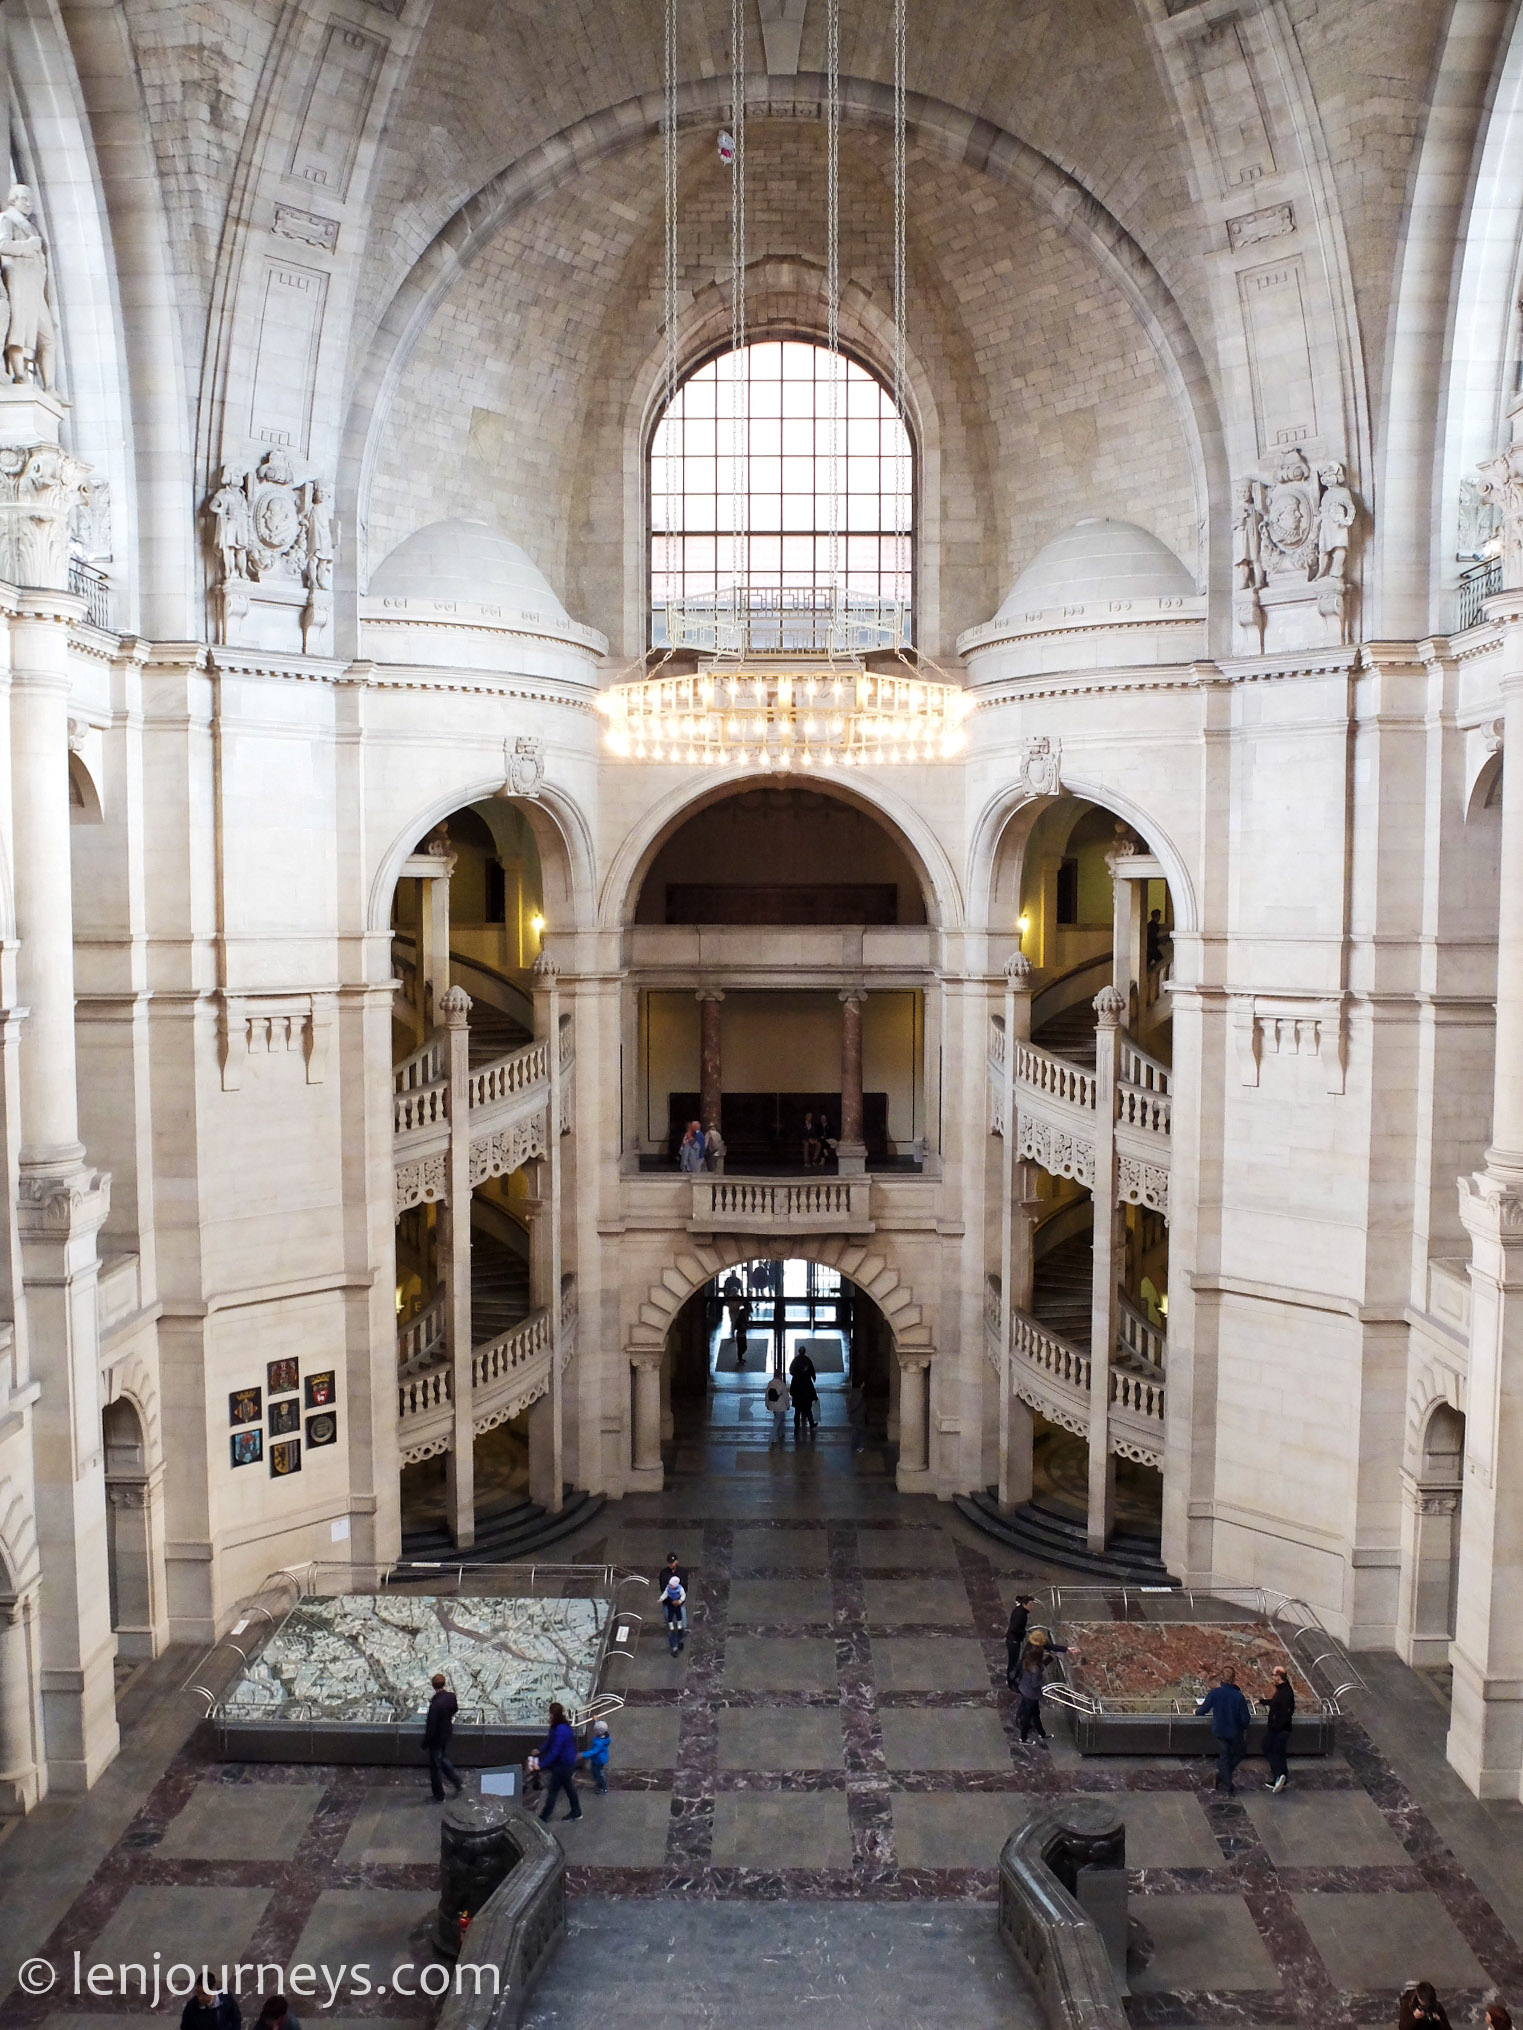 The interior of the New City Hall, Hanover